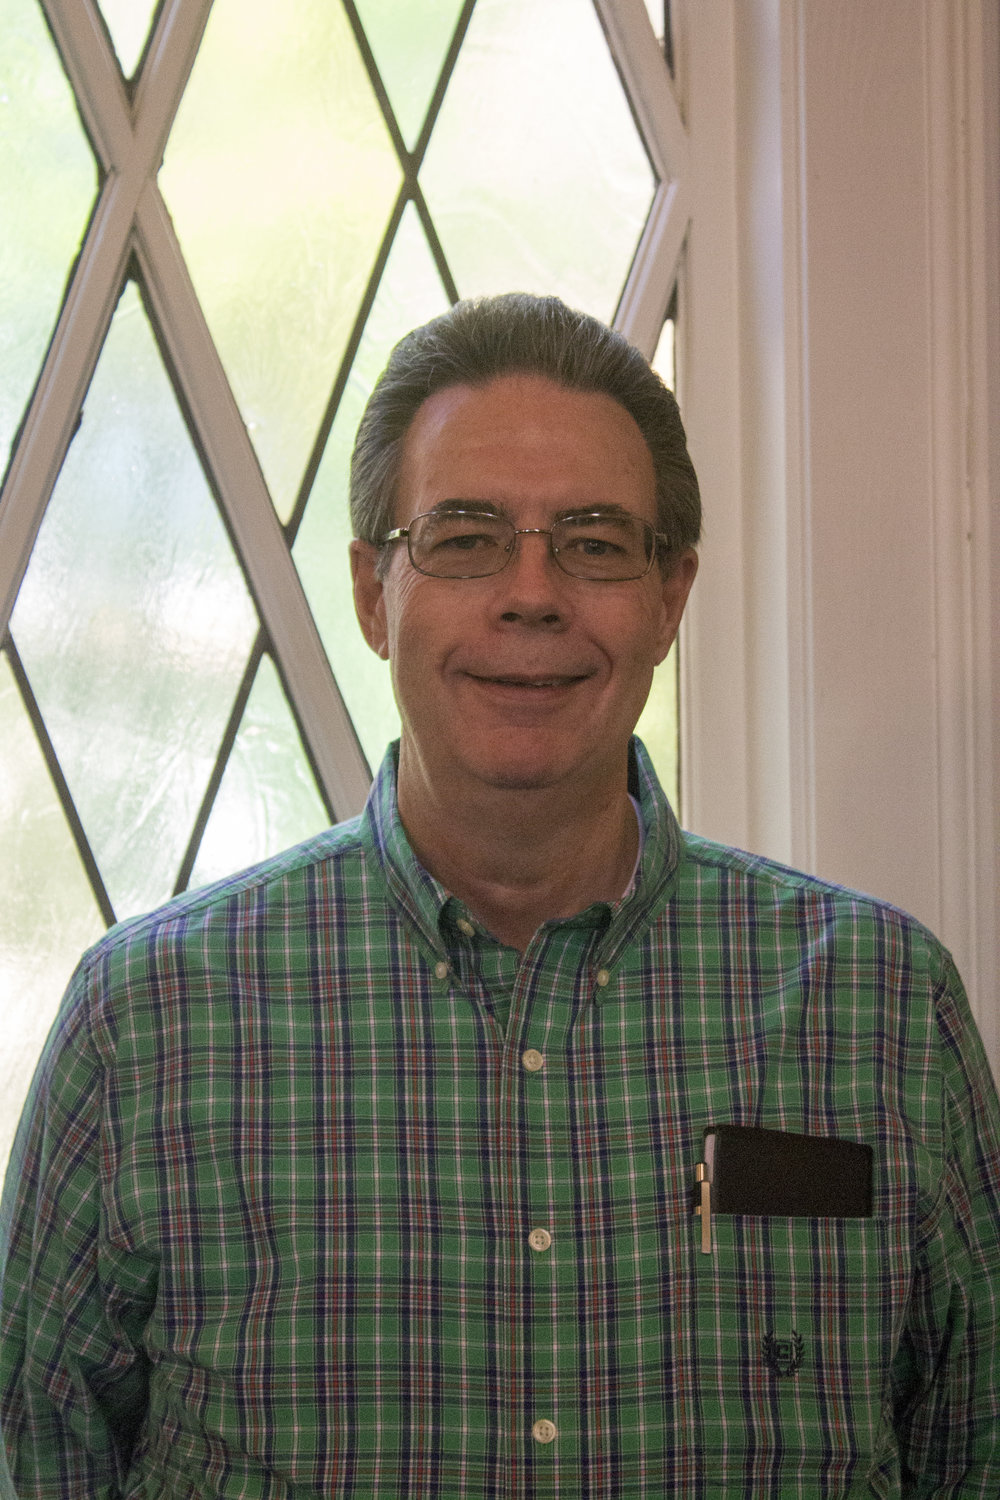 Ken Bush - Ken Bush serves as our Minister of Education and Outreach, with responsibilities including church administration, missions and ministries, and senior adults. Ken joined the Central Park staff in 2001 and had previously served churches in Tennessee and Indiana. He is married to Kay, a teacher at Austinville Elementary School, and they have two grown sons, Andrew and Alan.